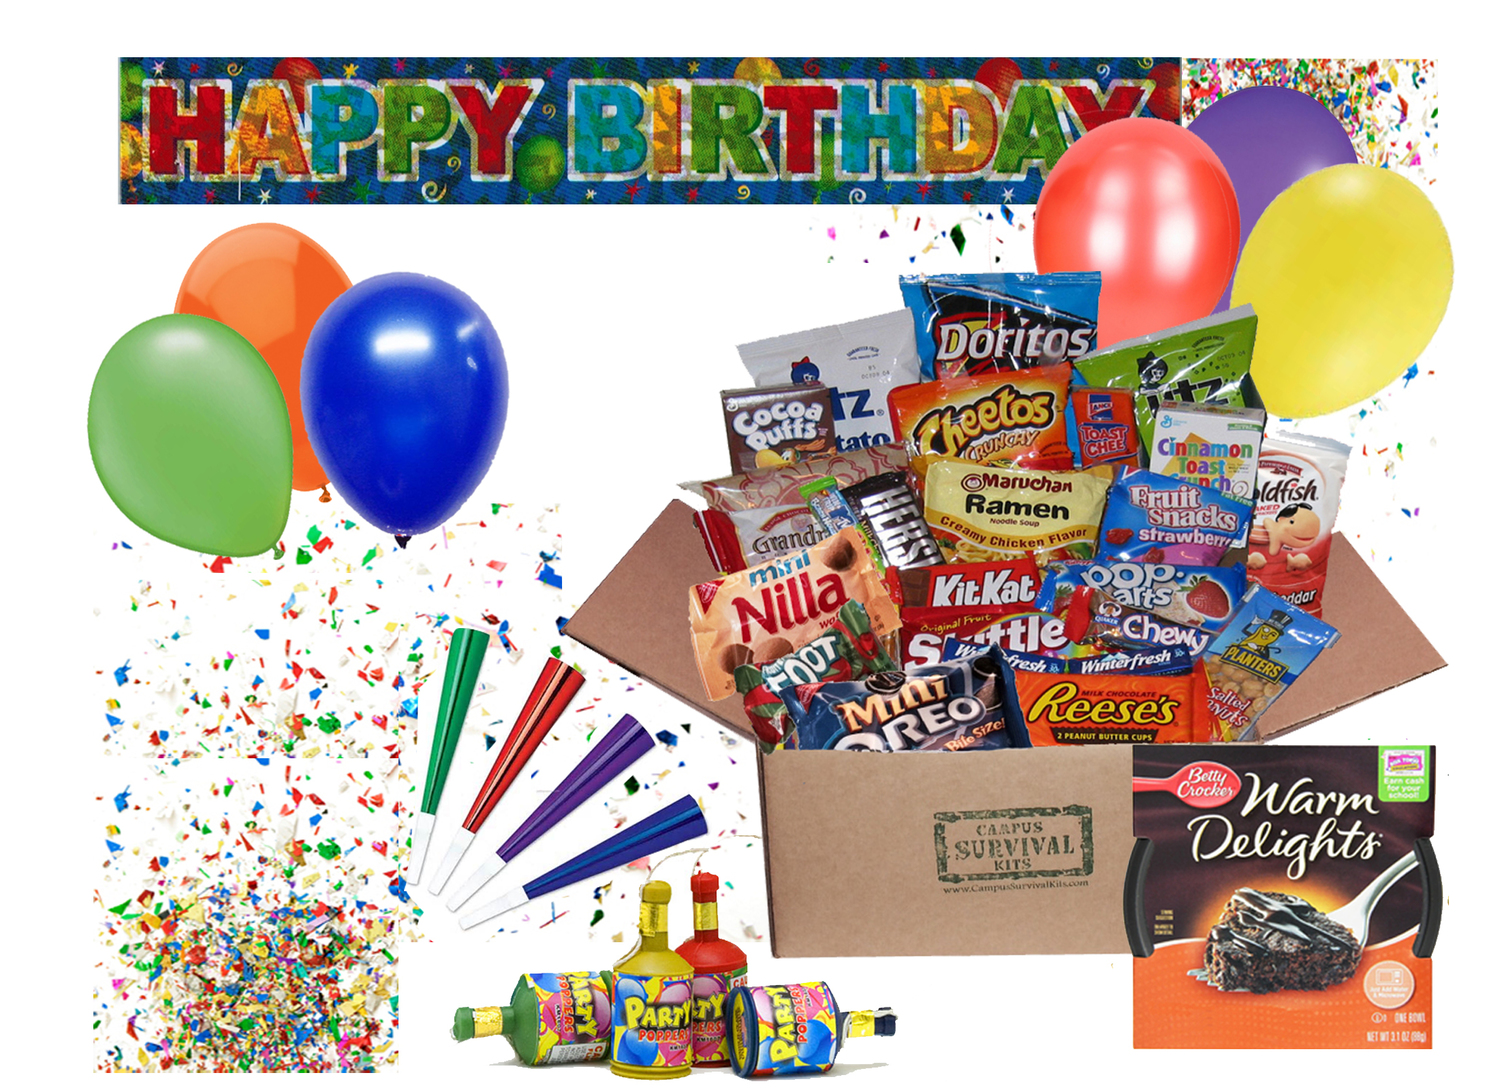 Happy Birthday Campus Survival Kit Kits